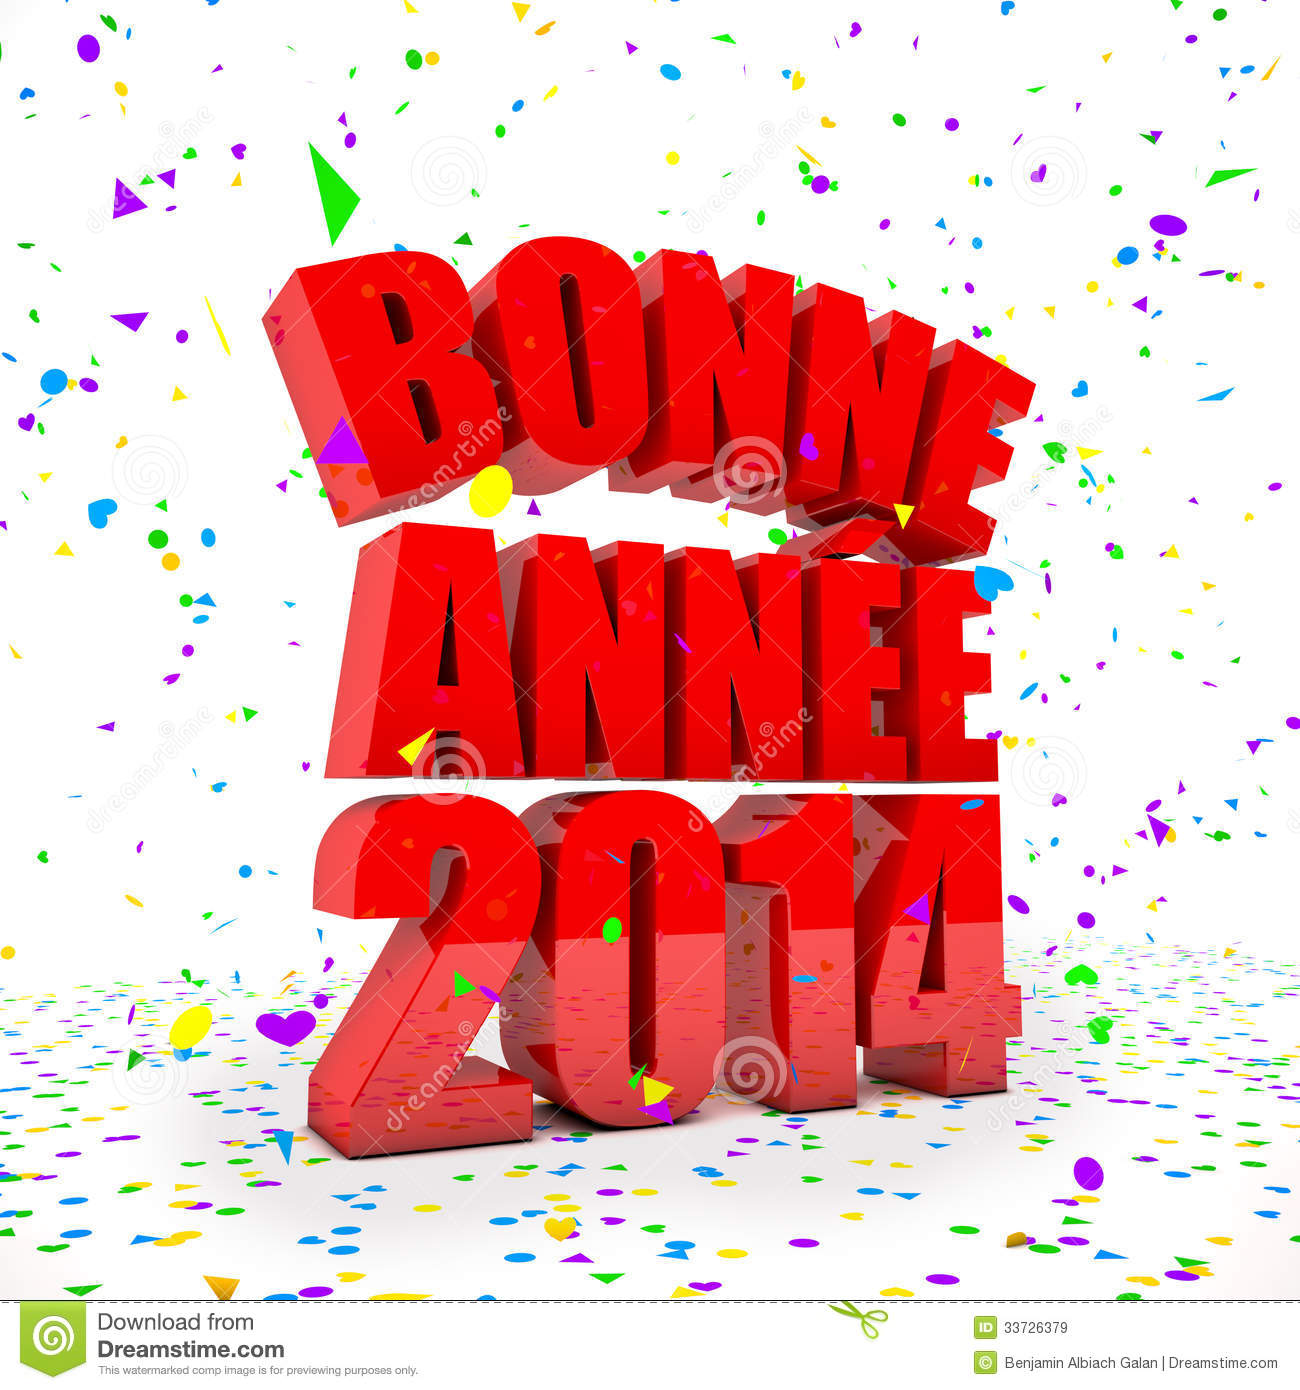 Happy New year 2014 in french languages